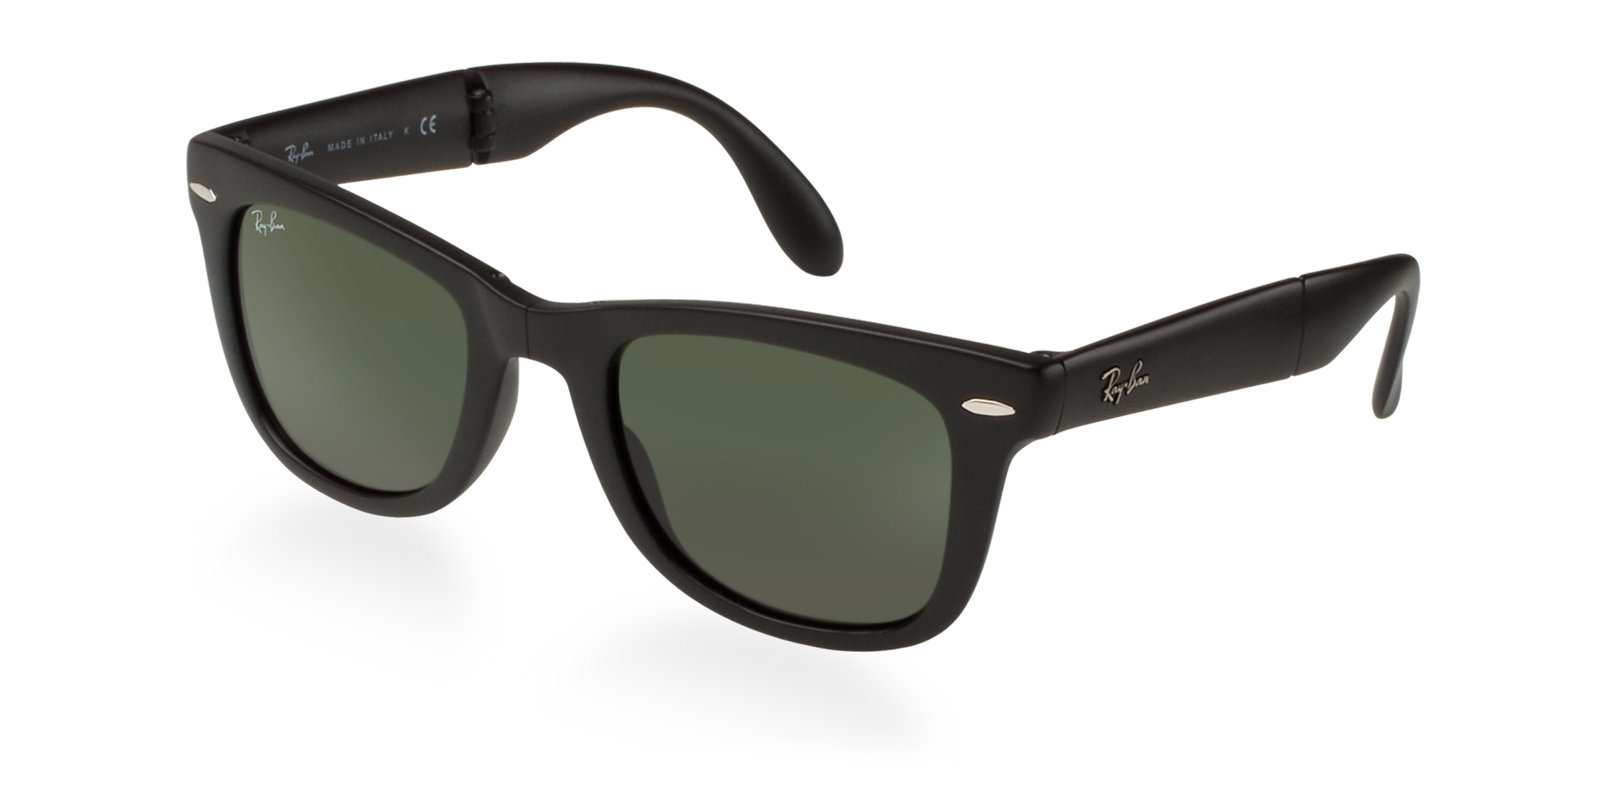 1320fd5883 best price rb 4105 601 black angle. previous next. previous next. ray ban